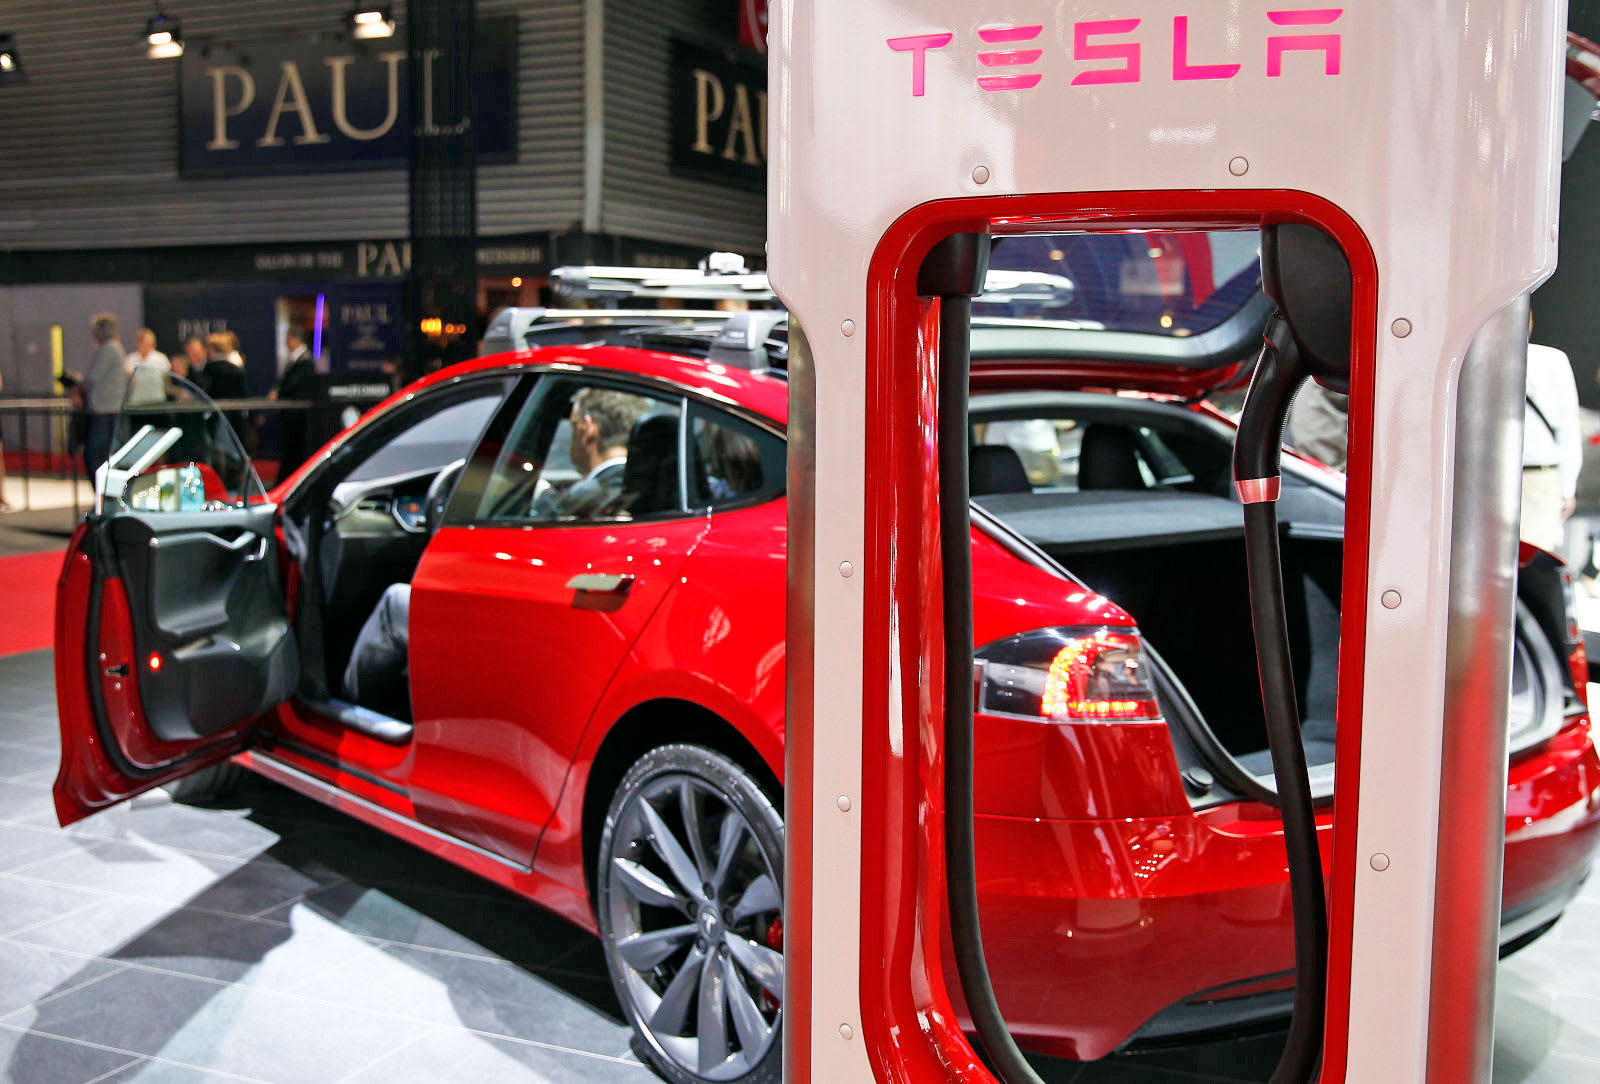 Chesnot Via Getty Images Tesla Batteries